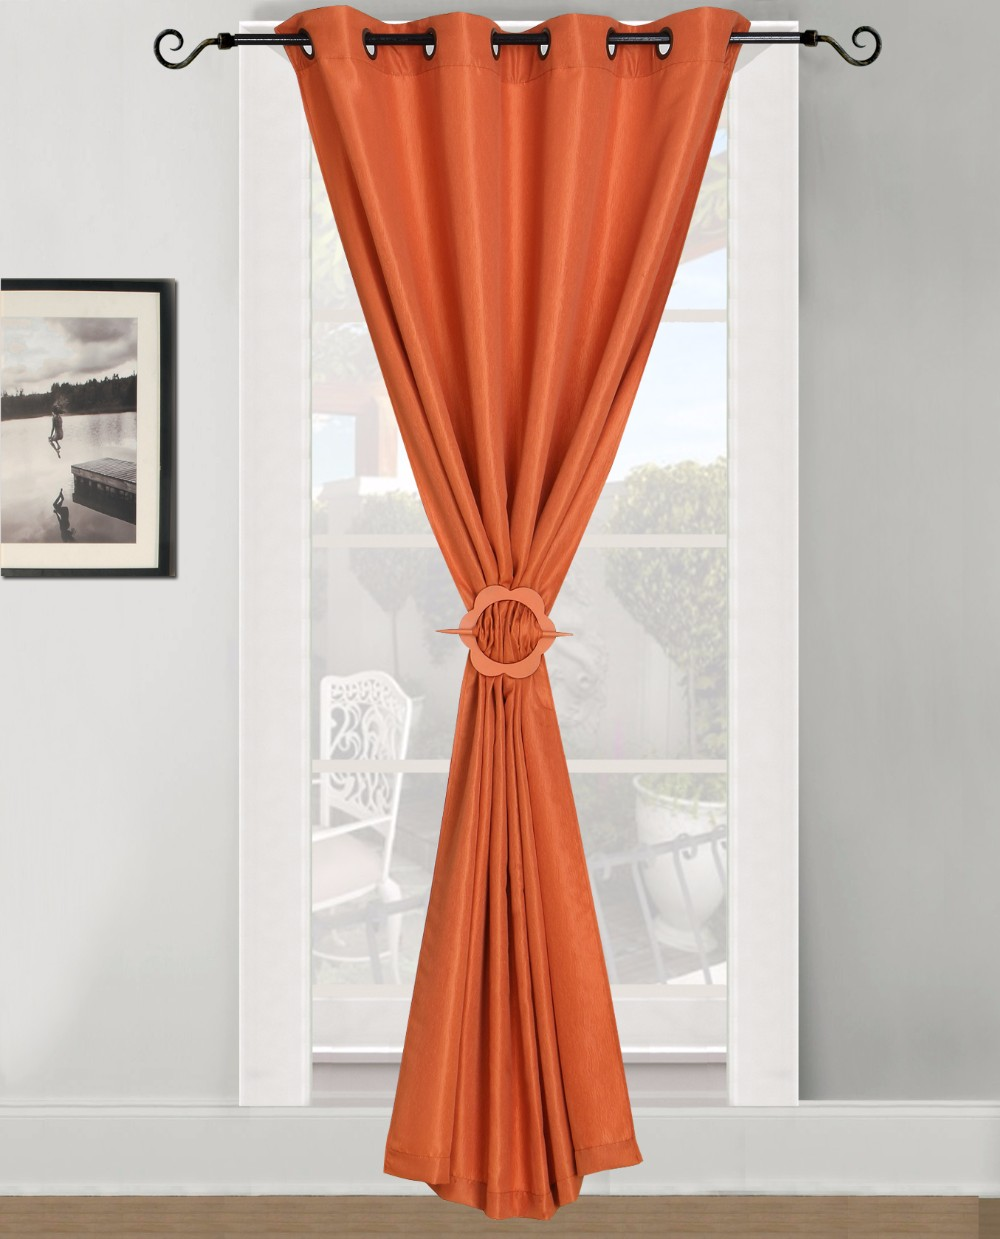 Add Style Energy Efficiency And A Touch Of Color To Any Room With This Elegant Curtain PanelComfortable Texture Meets Soft